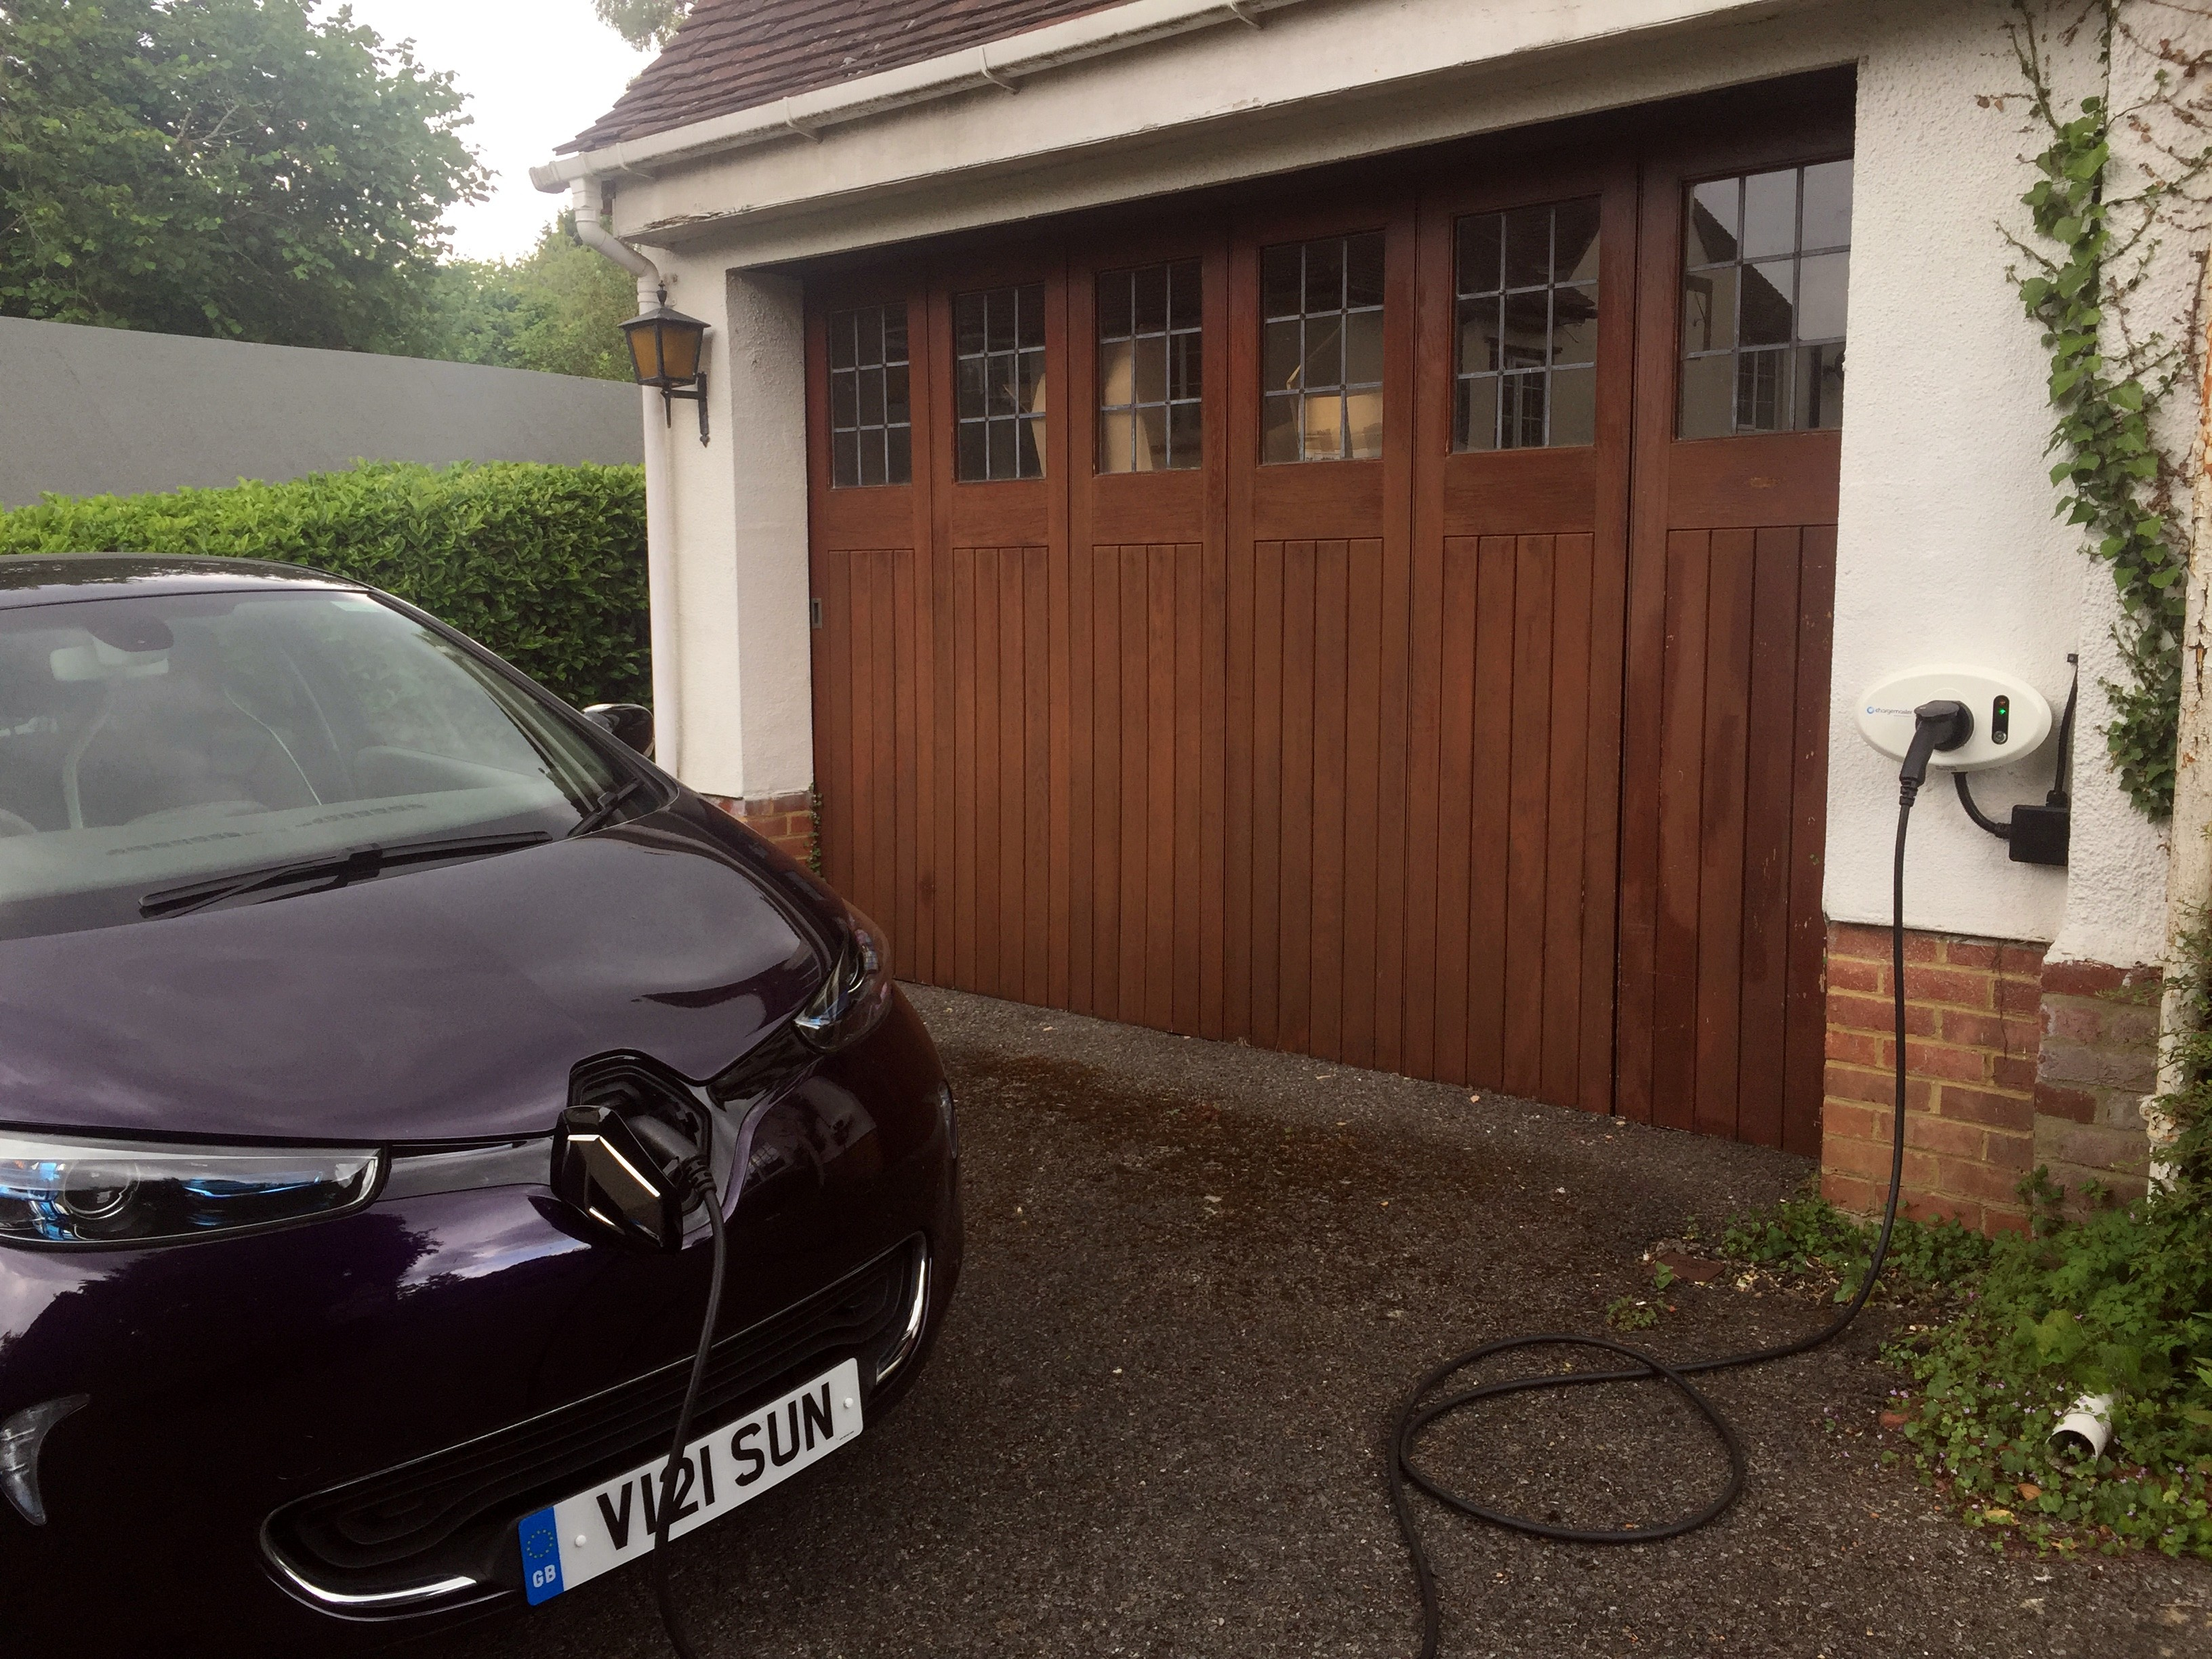 renault Zoe charging at home in front of brown garage door